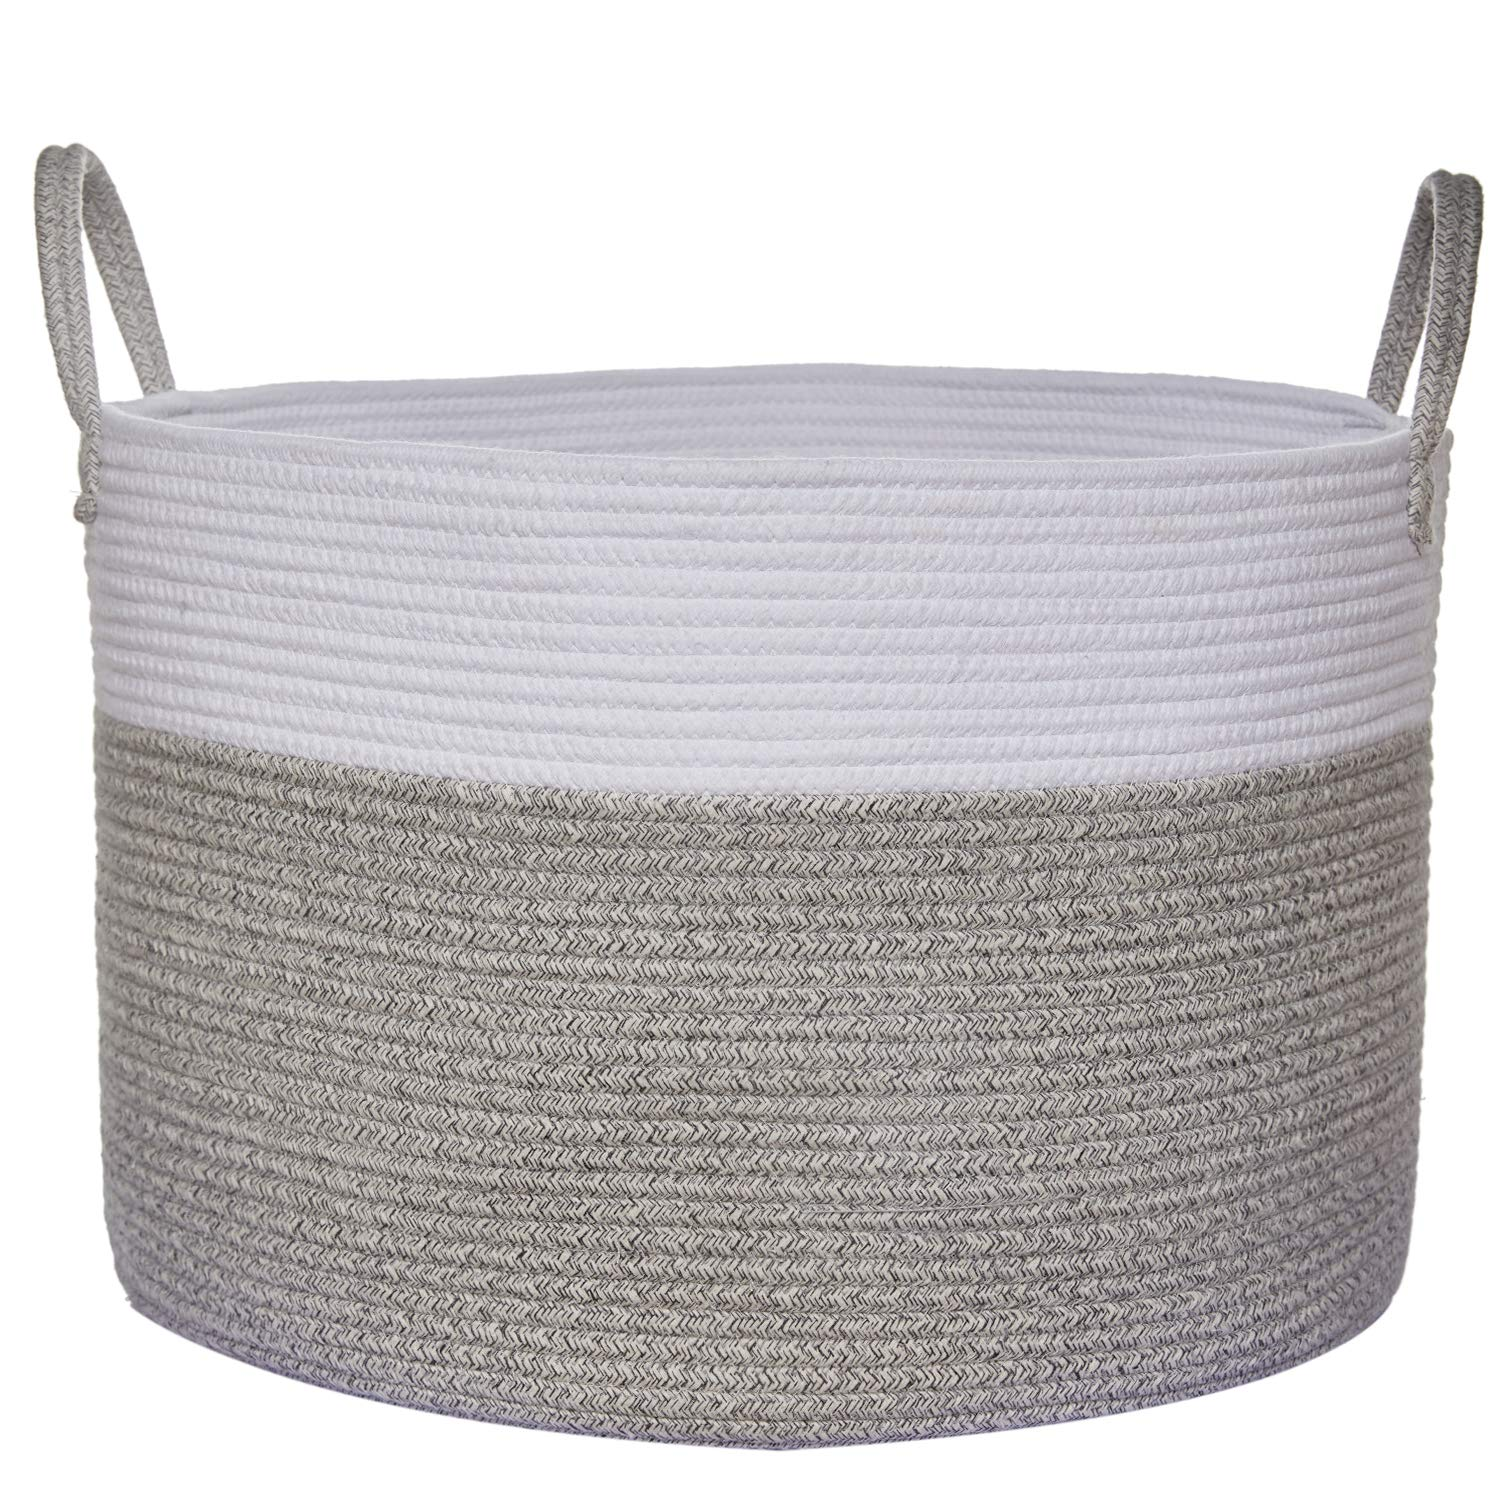 """COMEMORY Large Cotton Rope Basket, 20"""" x 14"""" Laundry Blanket Storage Basket with Built-in Sturdy Handles, Baby Nursery Hamper for Home Decor and Organizing"""